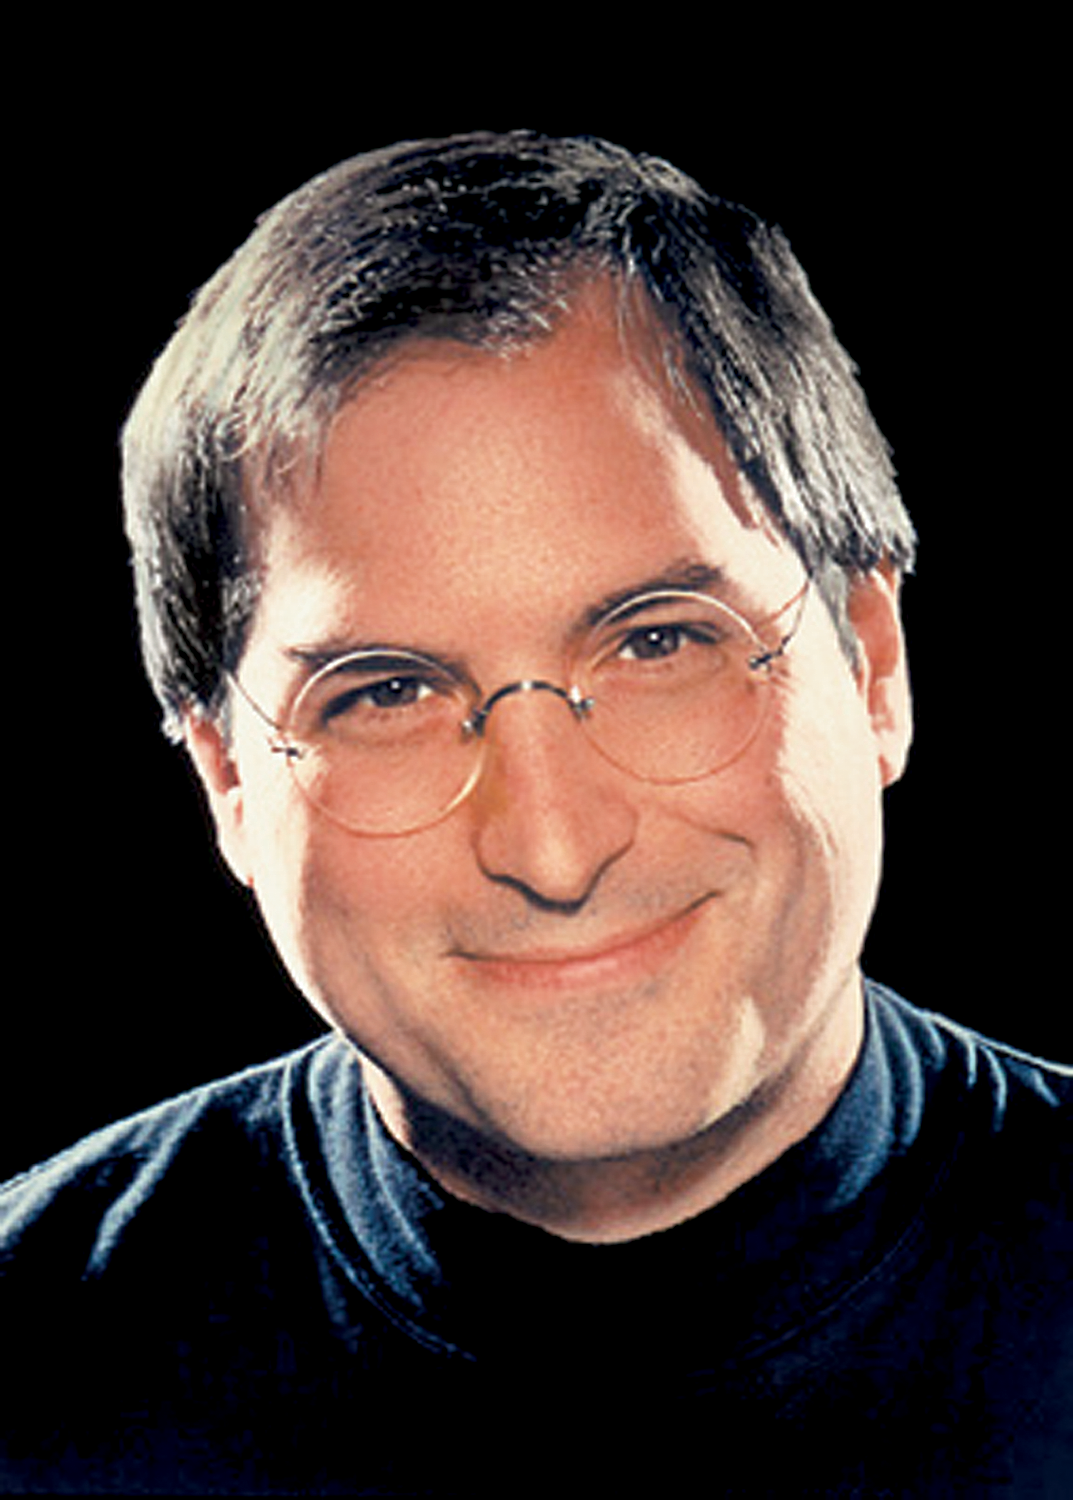 http://2.bp.blogspot.com/-BYDFiMtk3Wg/To0NMcgULlI/AAAAAAAAF50/-OpbAZlbOG4/s1600/Steve_Jobs_Apple_press_photo.png